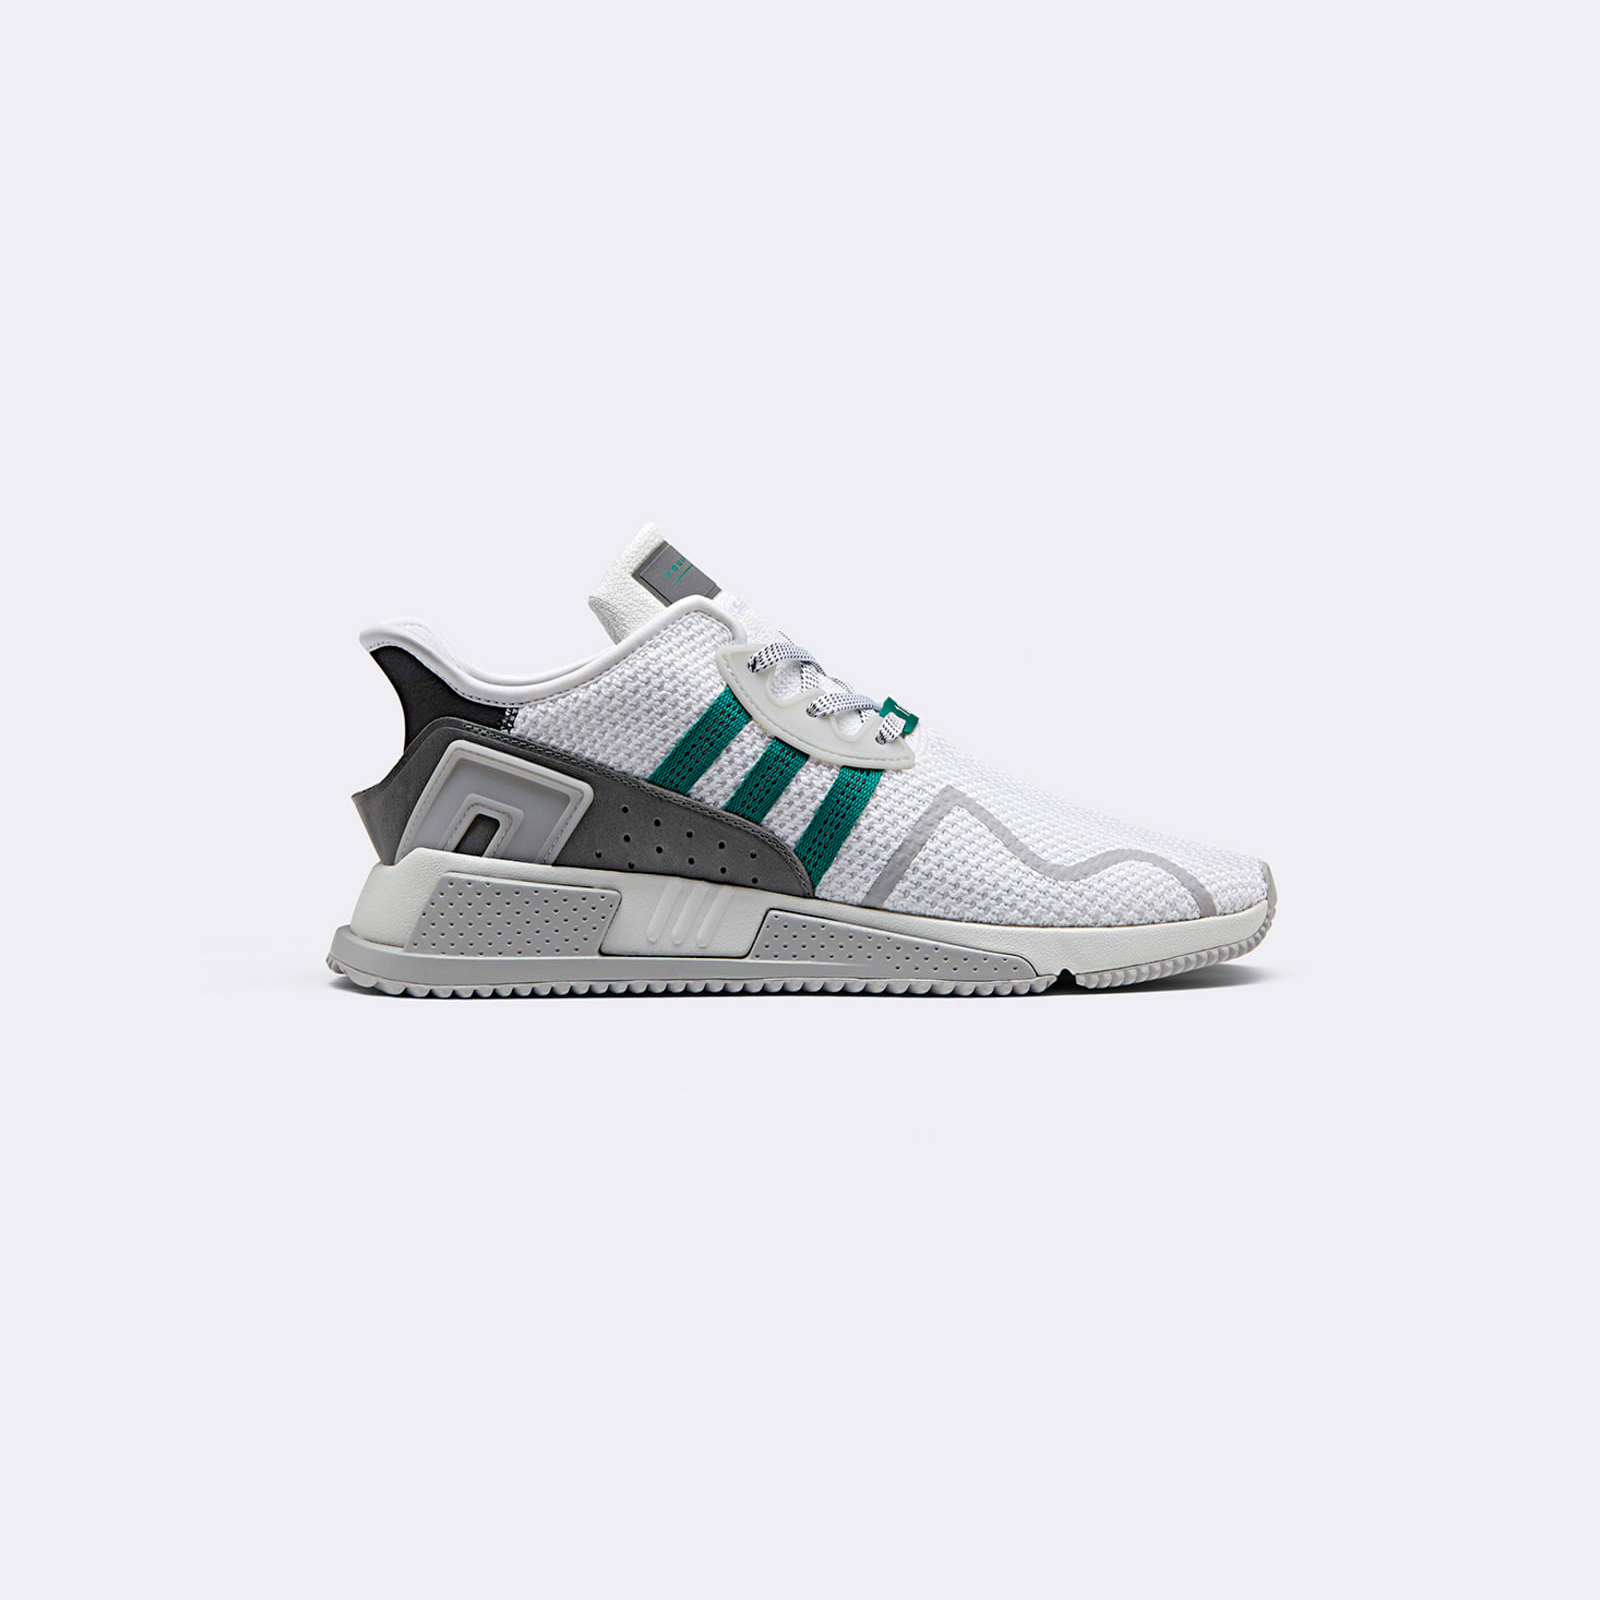 adidas eqt cushion adv shoes size 8